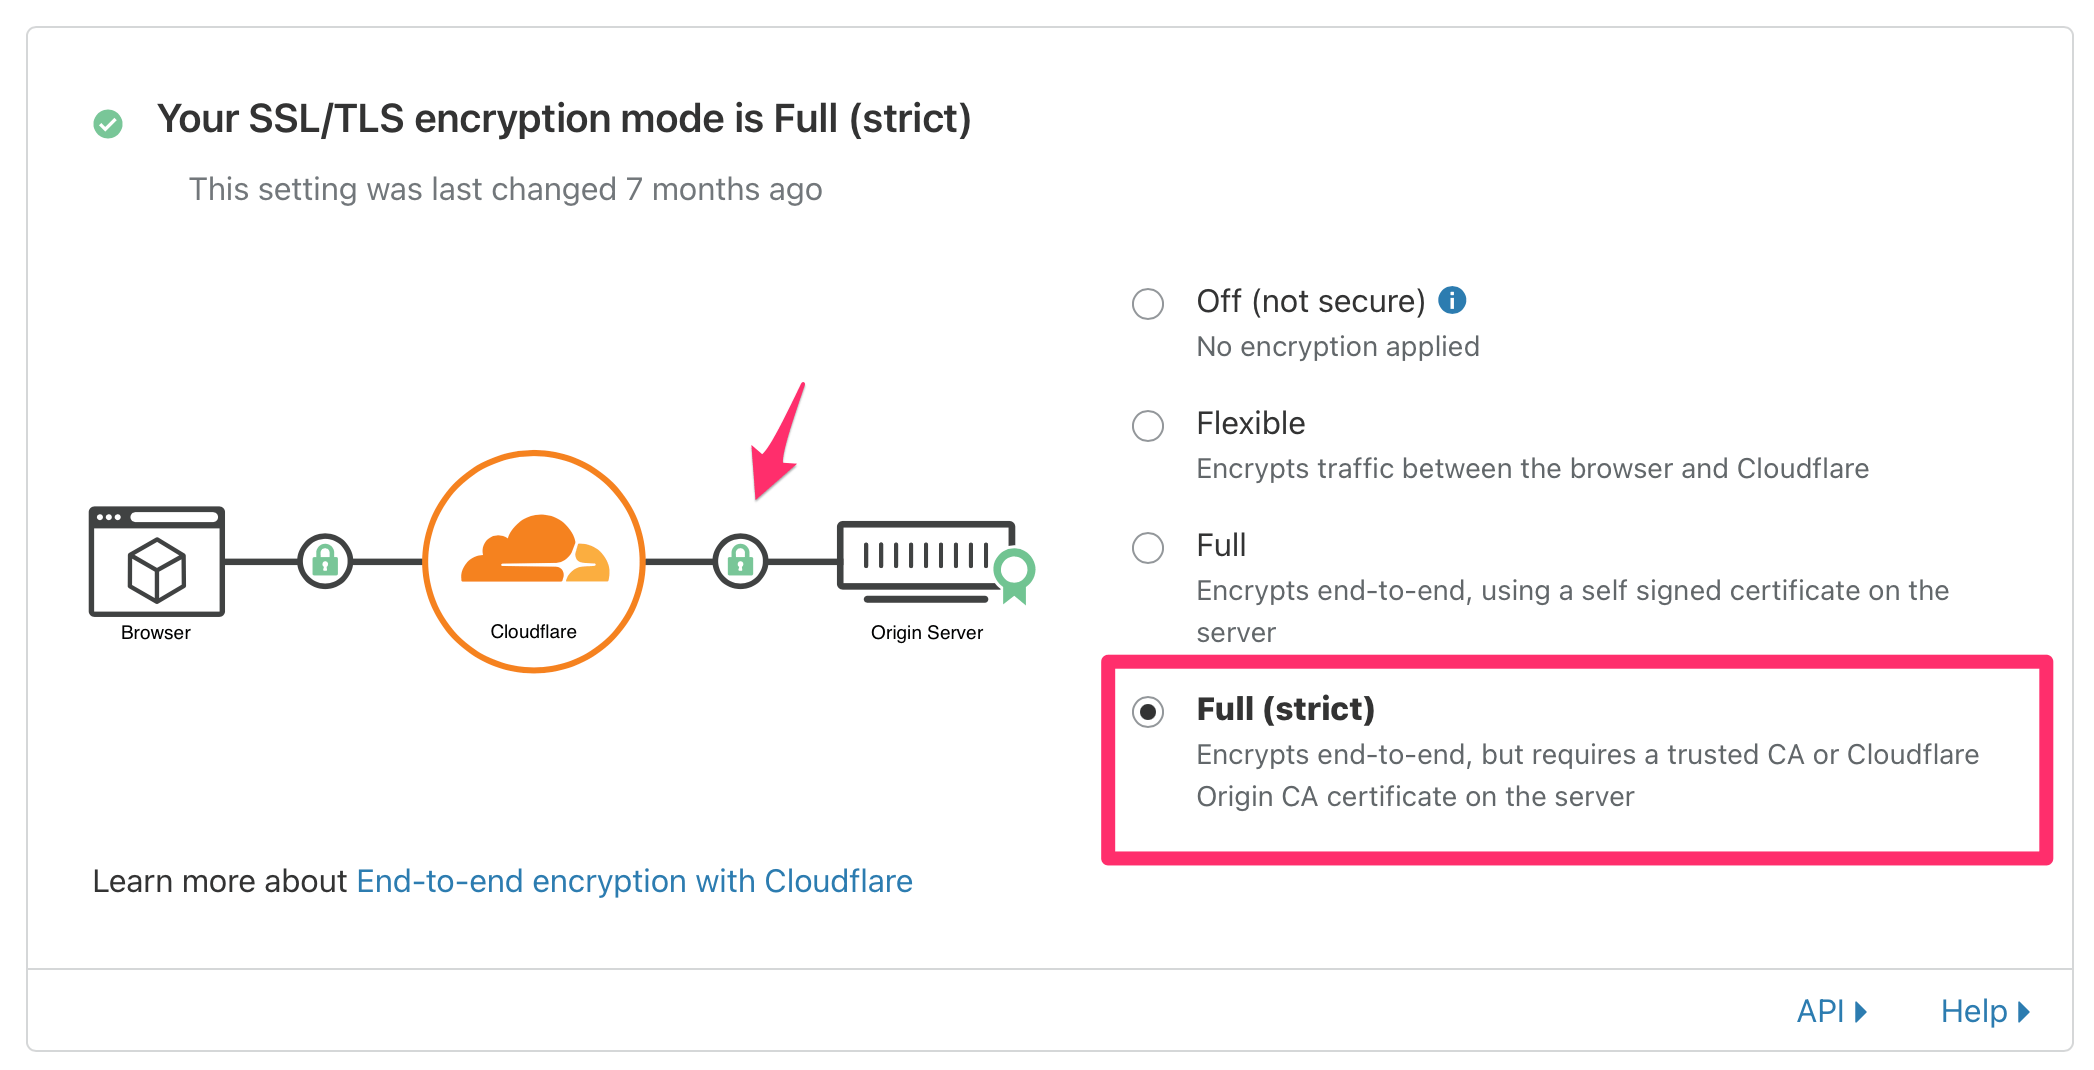 Cloudflare: enable full strict mode (SSL certificate)